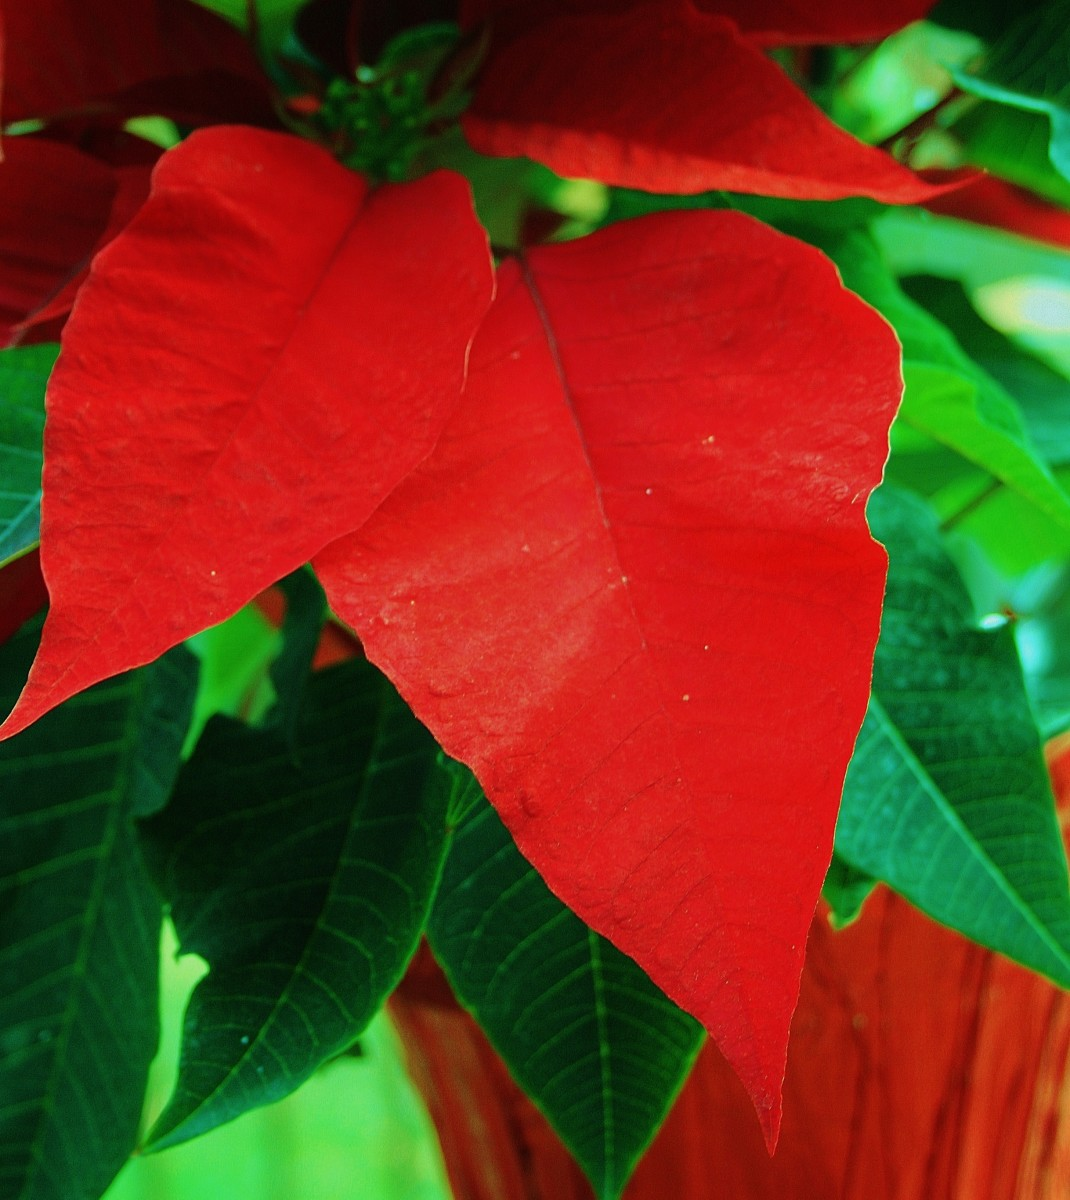 Bracts are leaf-life structures that grow around a plant's actual flowers. Poinsettia bracts surround its true flowers, which are small and nondescript.